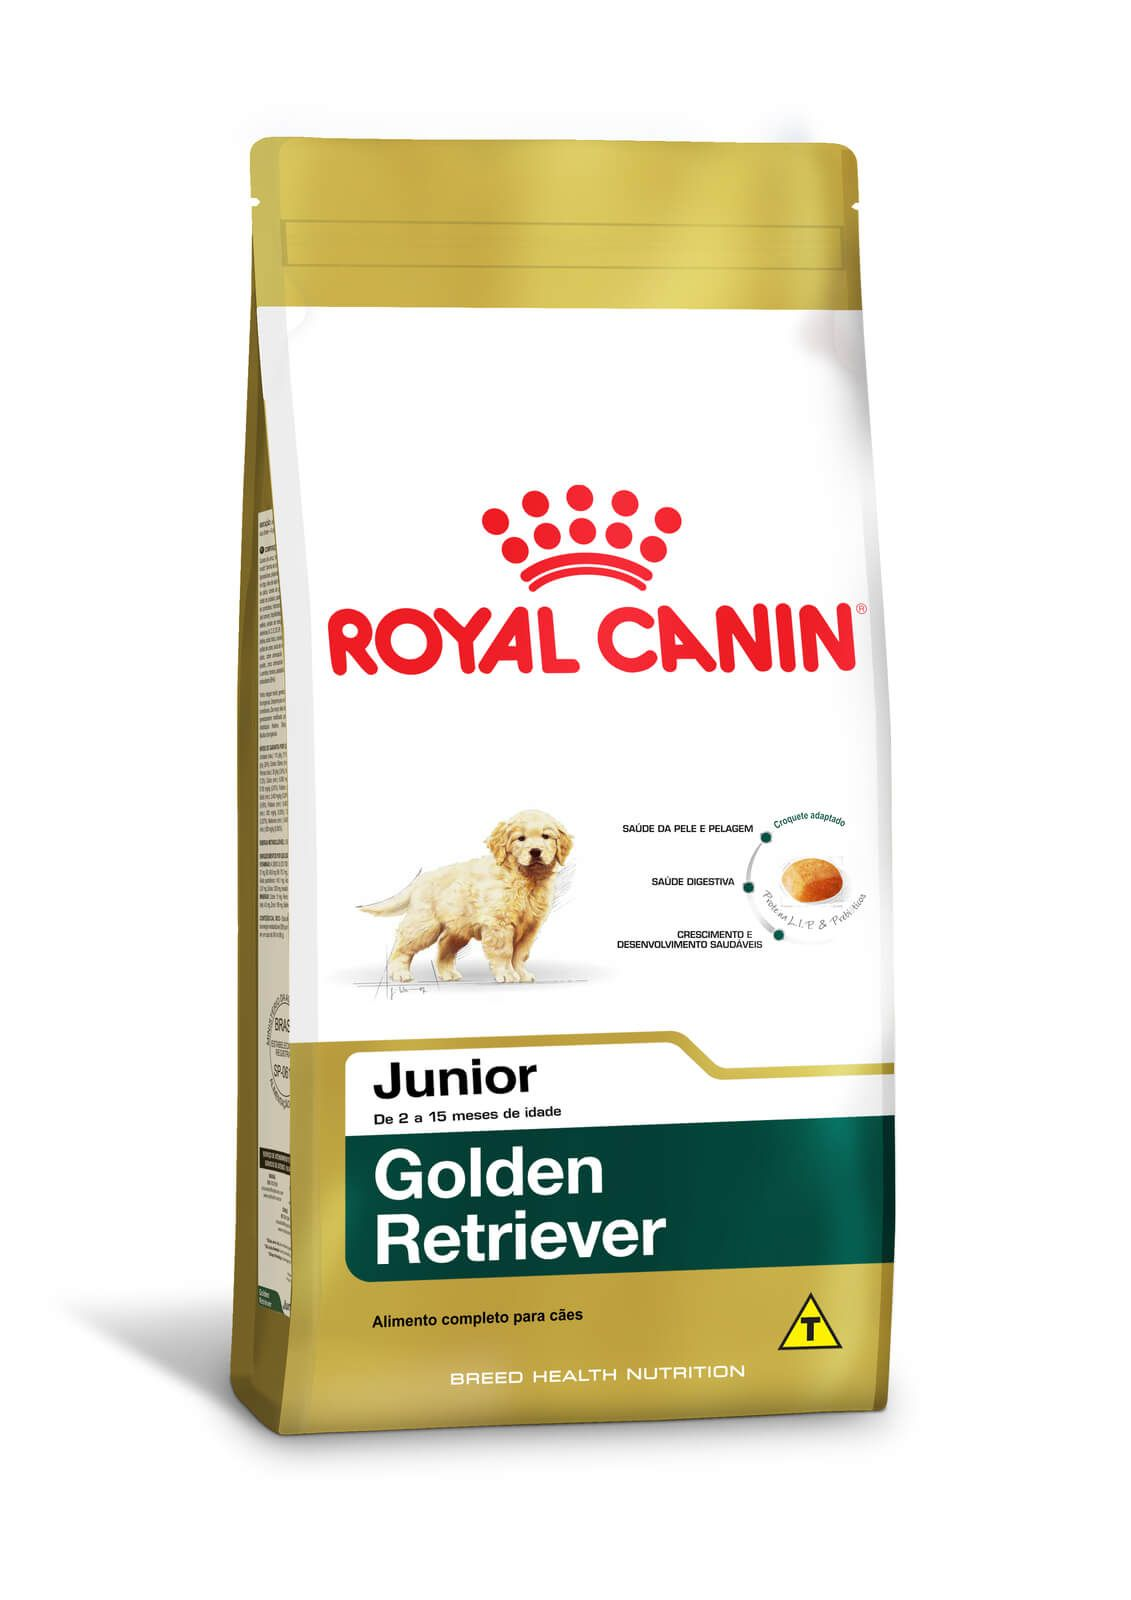 Ração Royal Canin Golden Retriever Junior 12kg